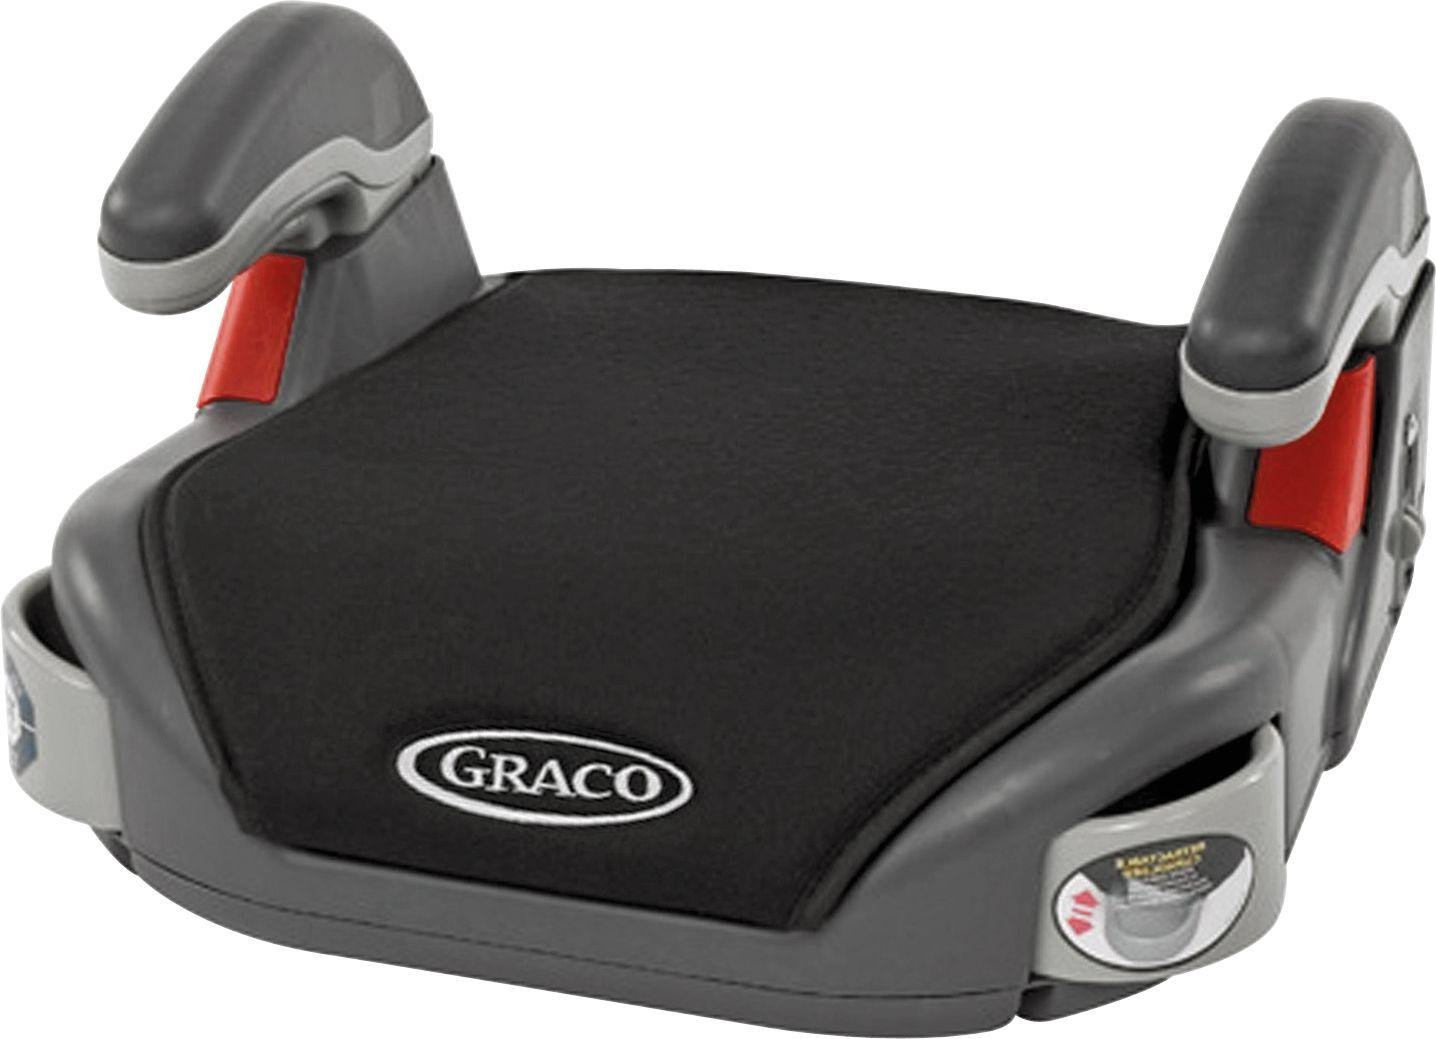 Image of Graco-Group 2-3 Basic Booster Seat with Cup Holders